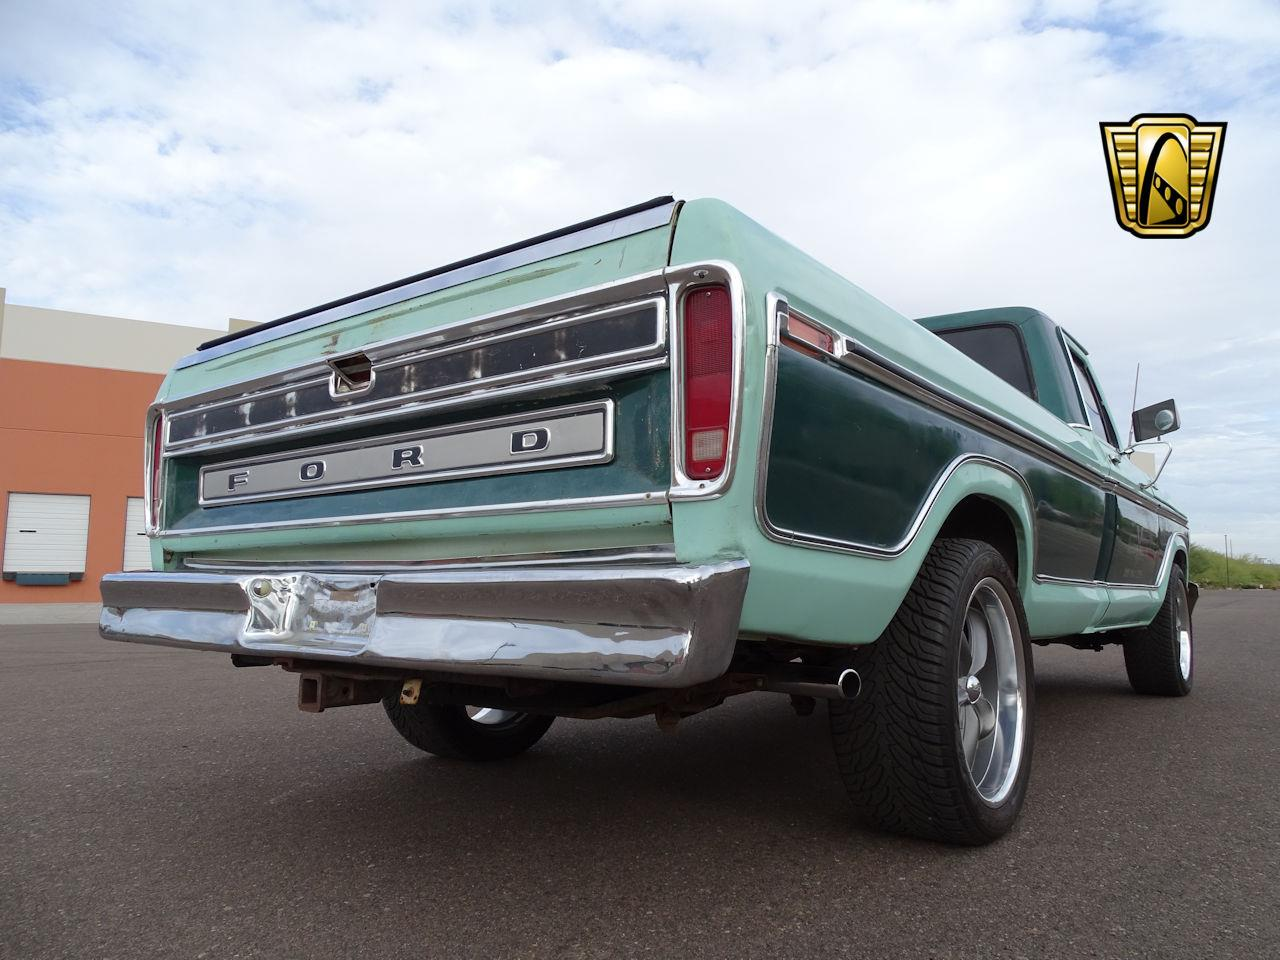 Large Picture of '78 F150 located in Deer Valley Arizona - $17,995.00 Offered by Gateway Classic Cars - Scottsdale - MEMV